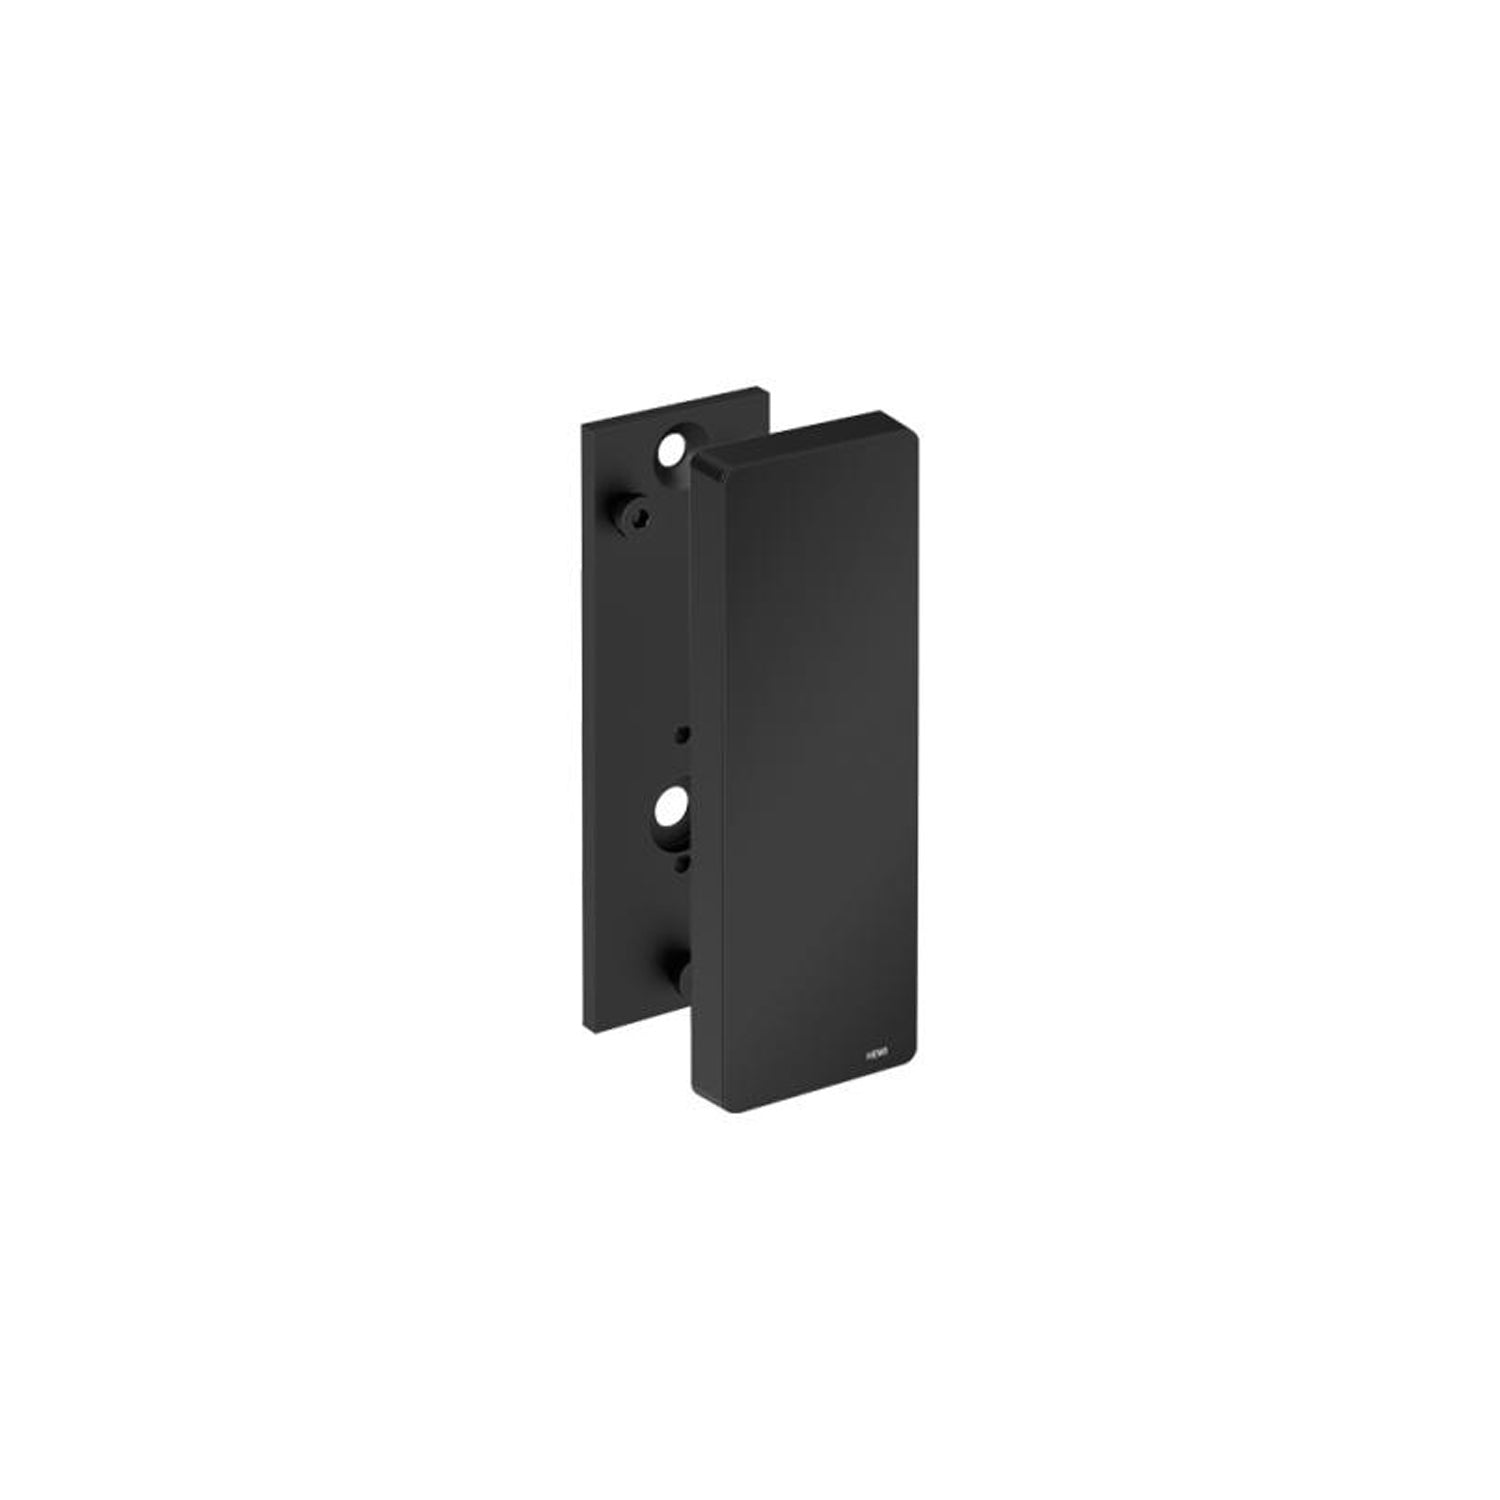 Freestyle Removable Hinged Grab Rail Mounting Plate and Cover with a matt black finish on a white background